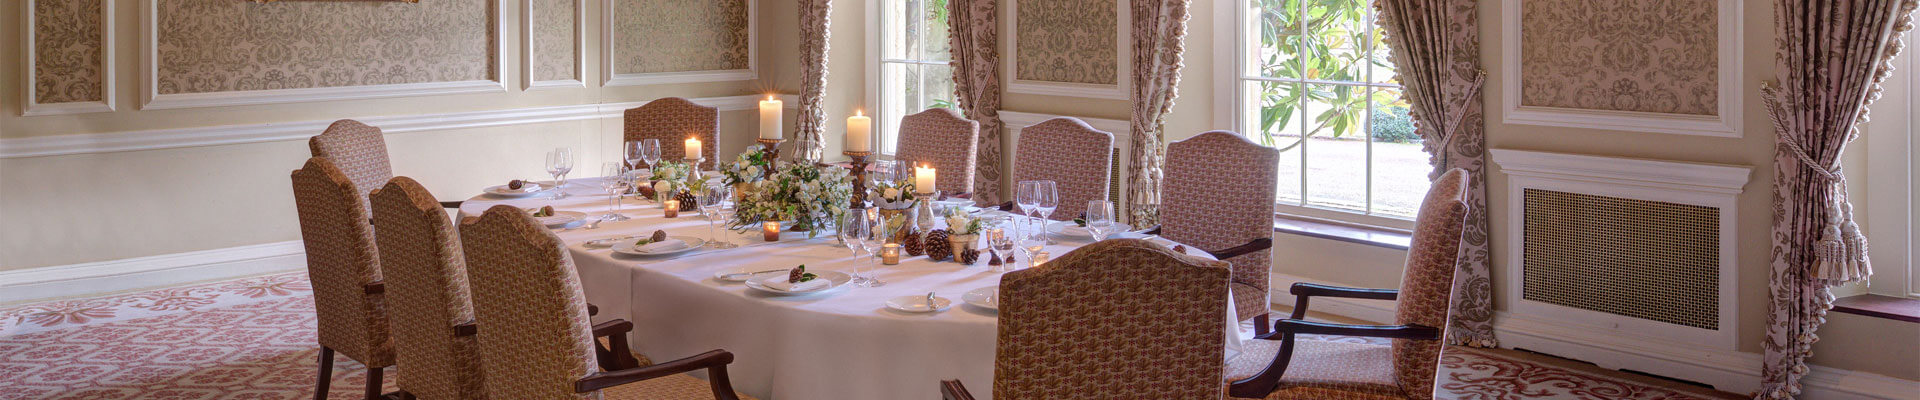 Photo of one of the function rooms at Lucknam Park